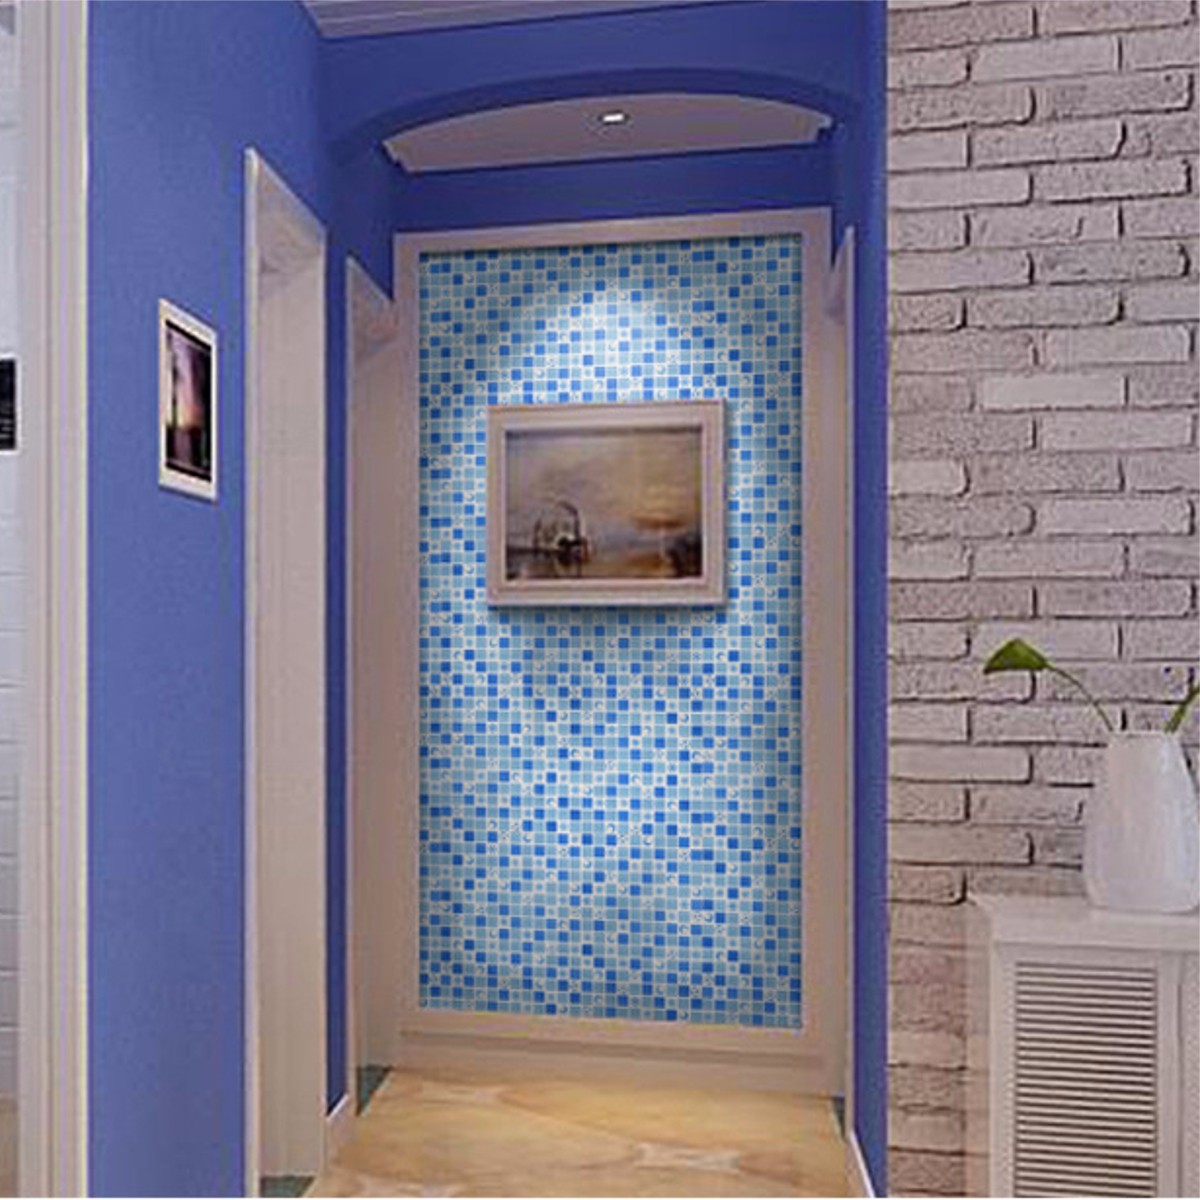 Waterproof Crystal 3D Mosaic Tiles Wall Sticker for ...